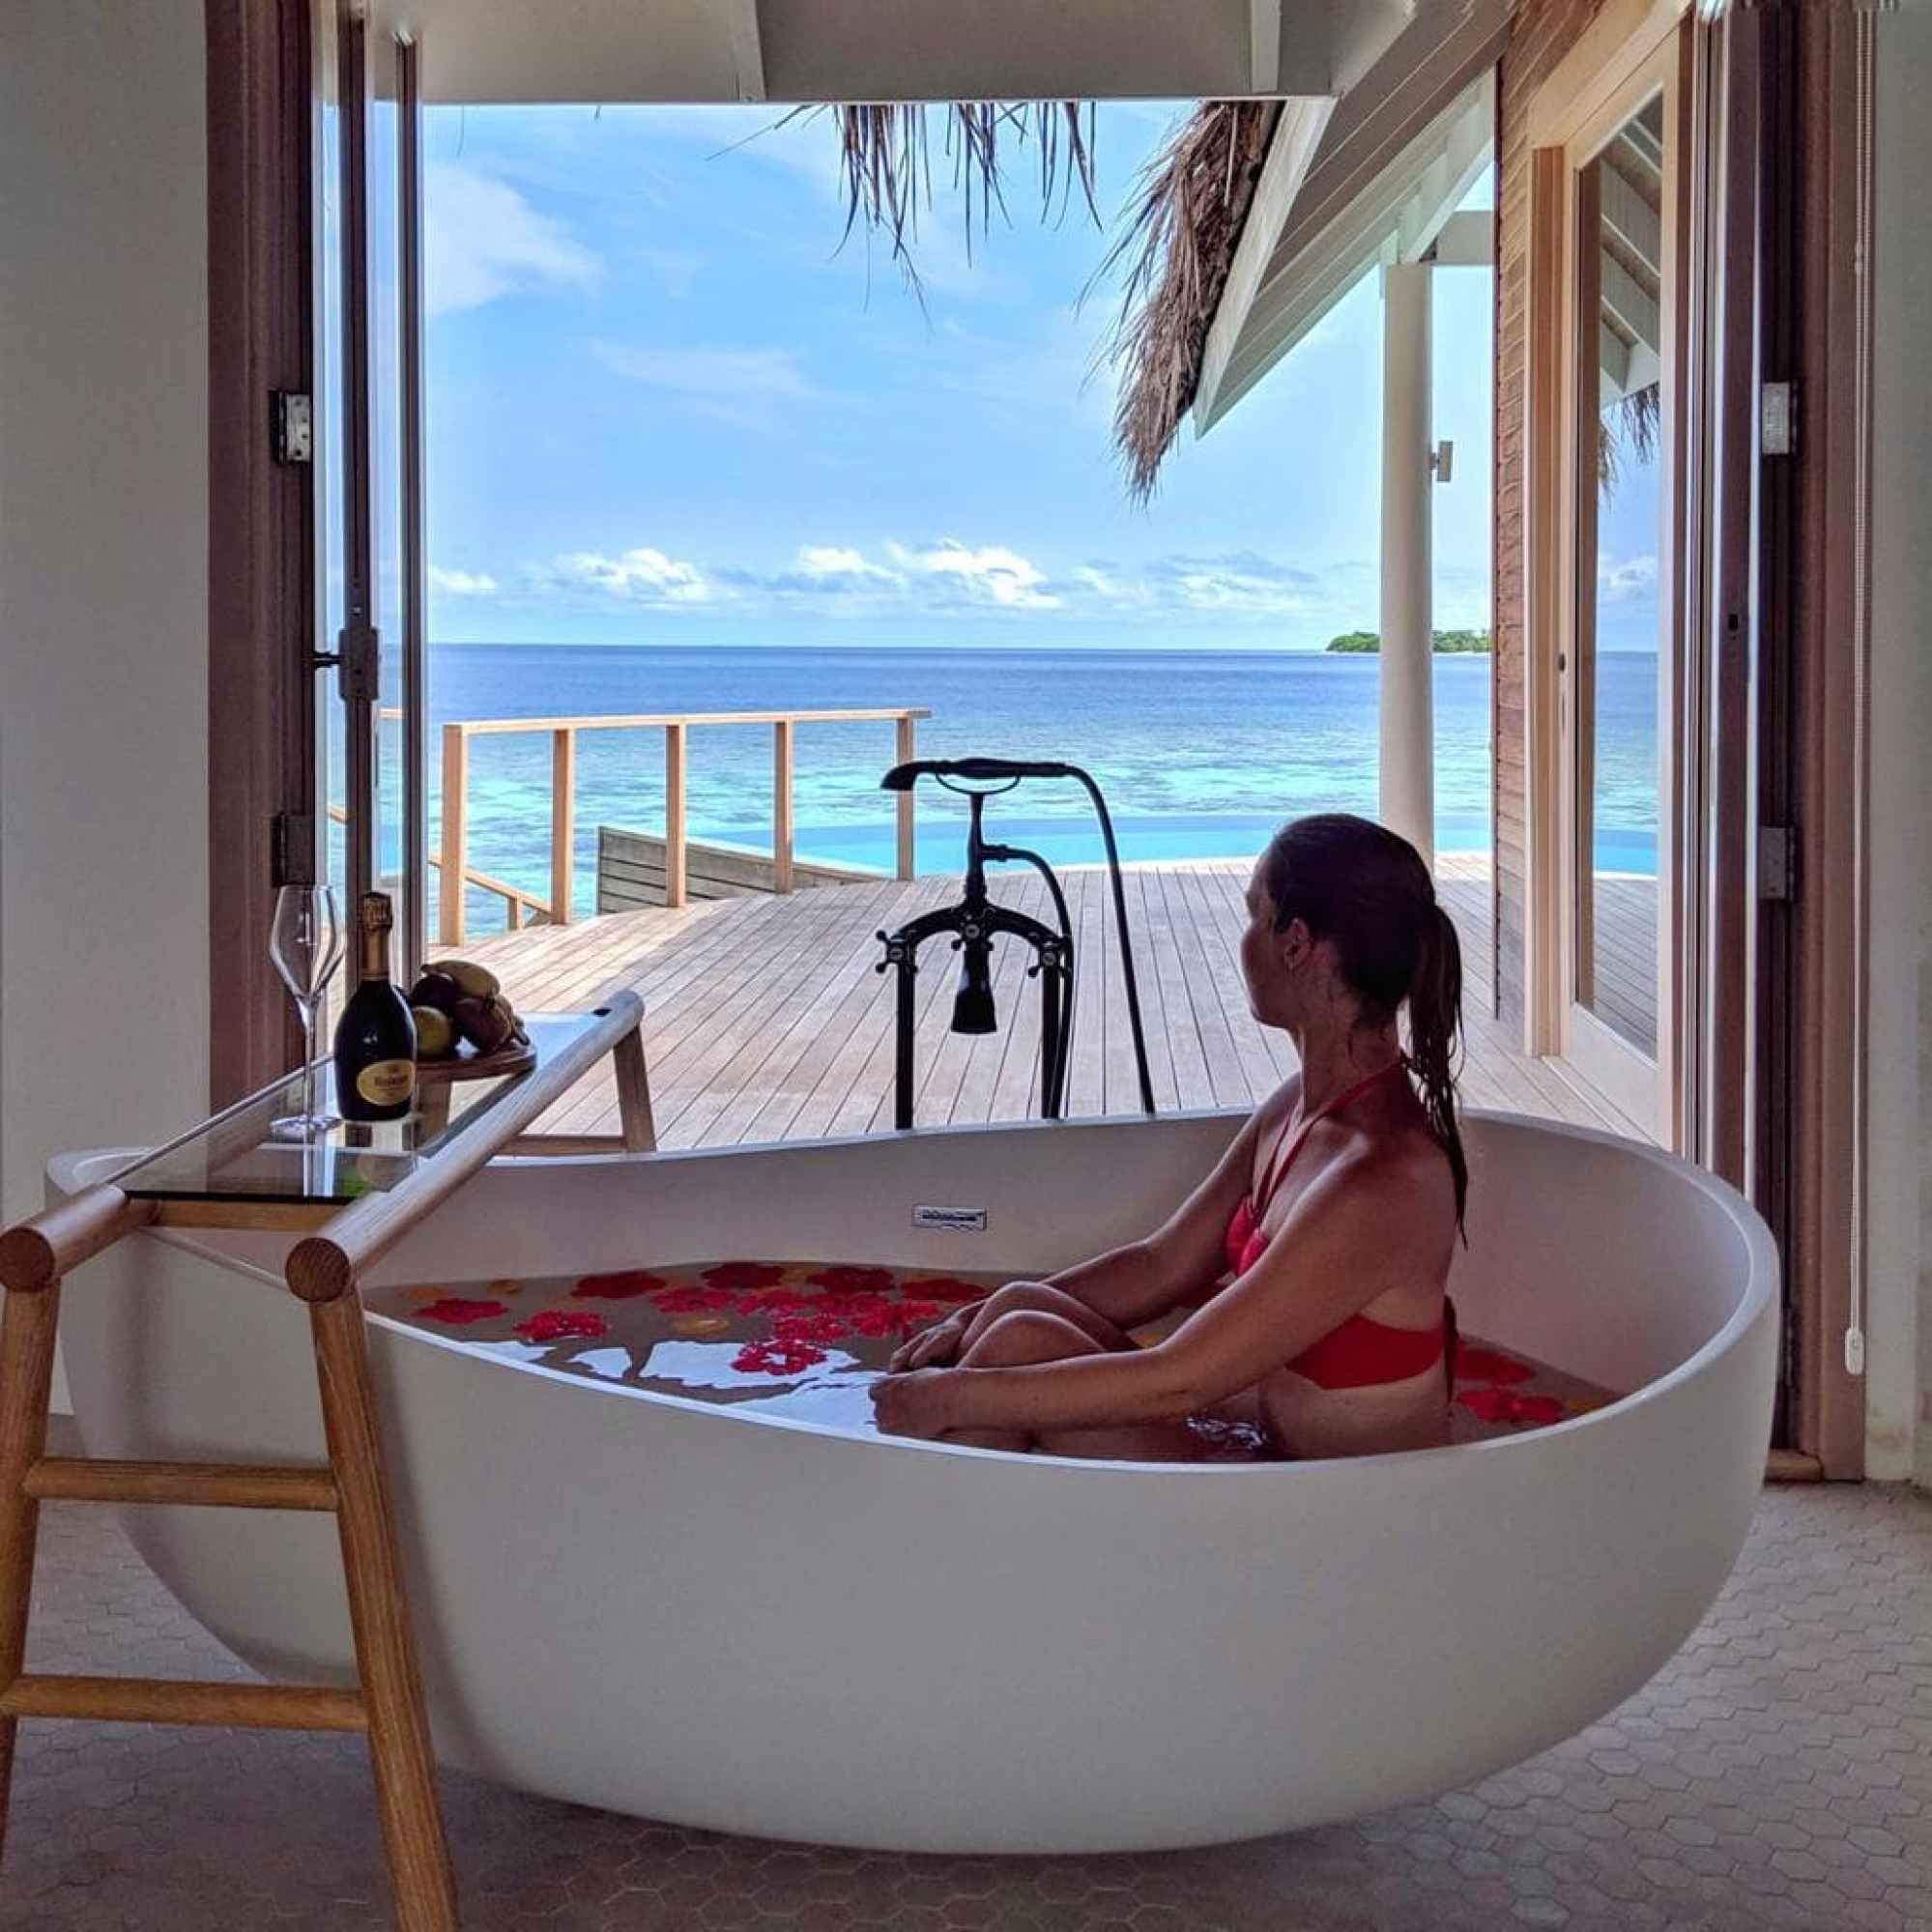 Bathtub views from the water villa at Milaidhoo